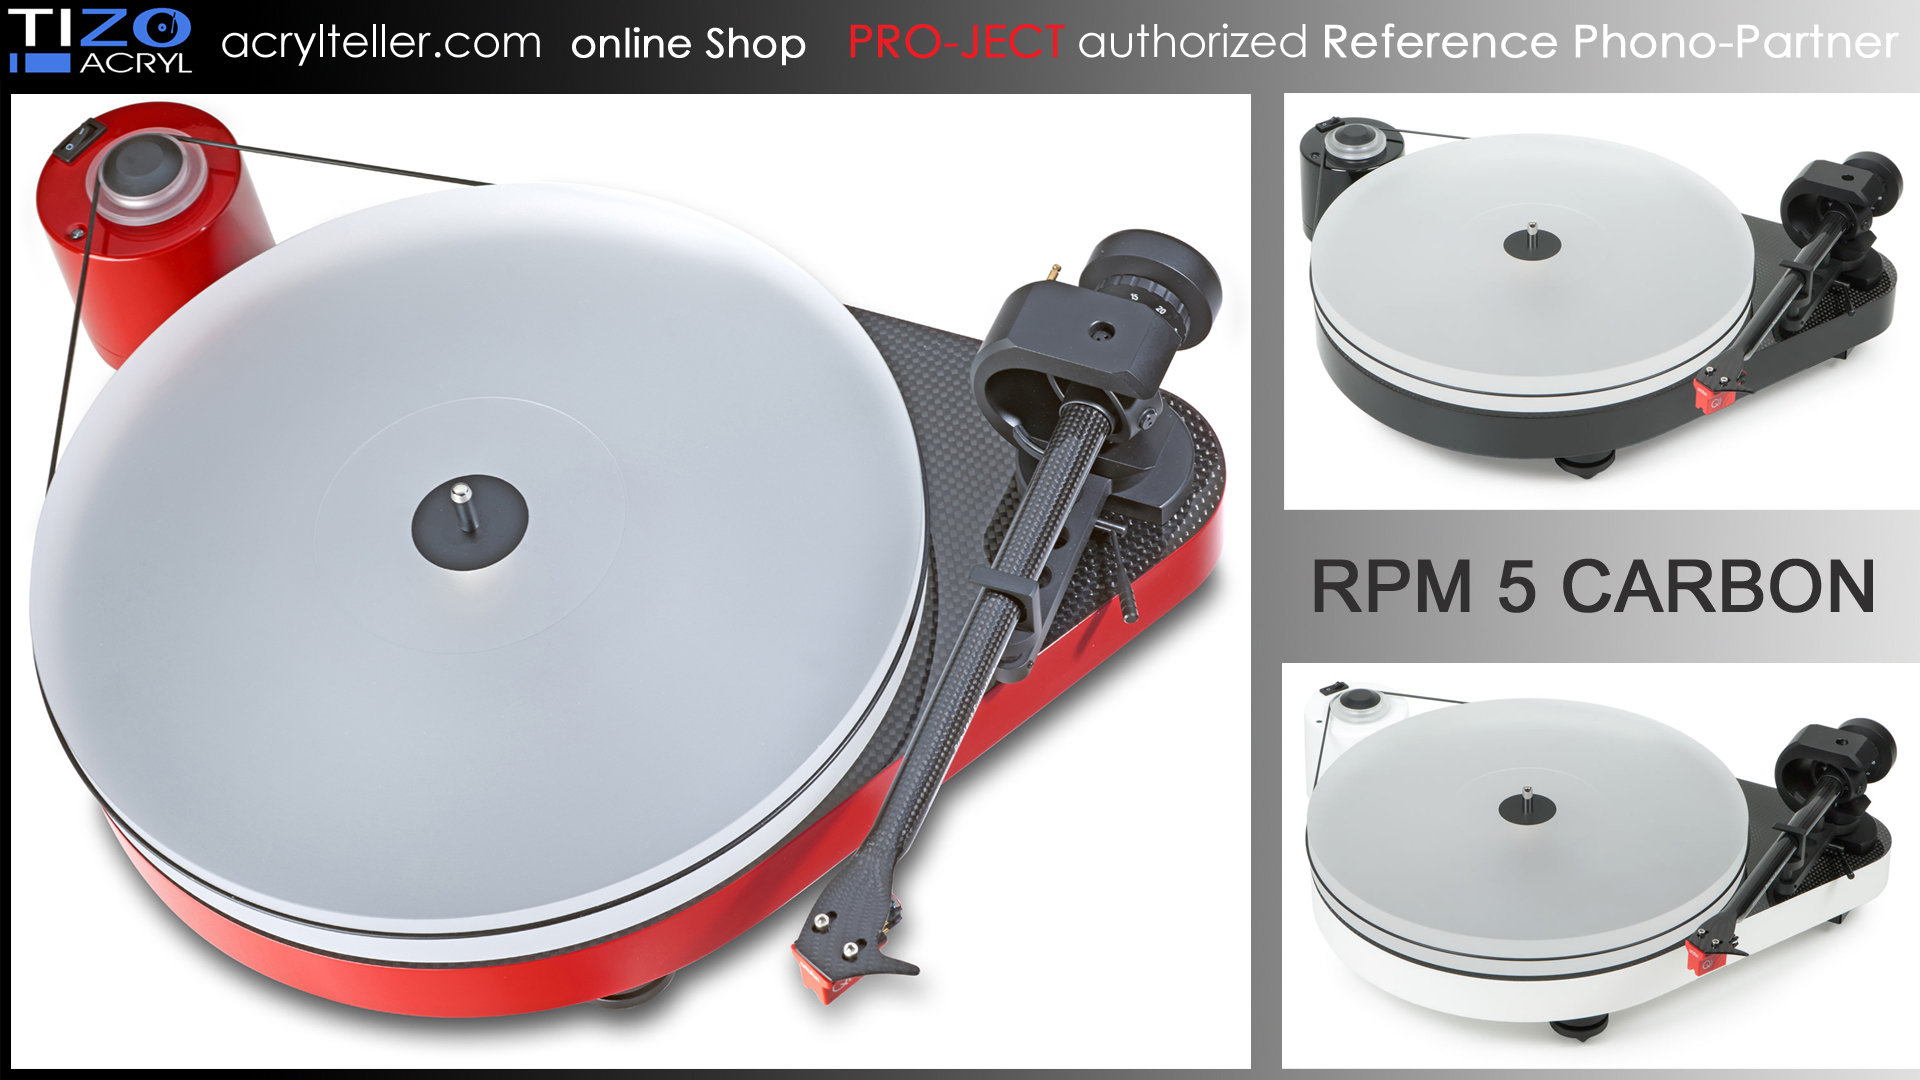 PRO-JECT RPM 5 CARBON turntable incl. DELTA DEVICE Puck